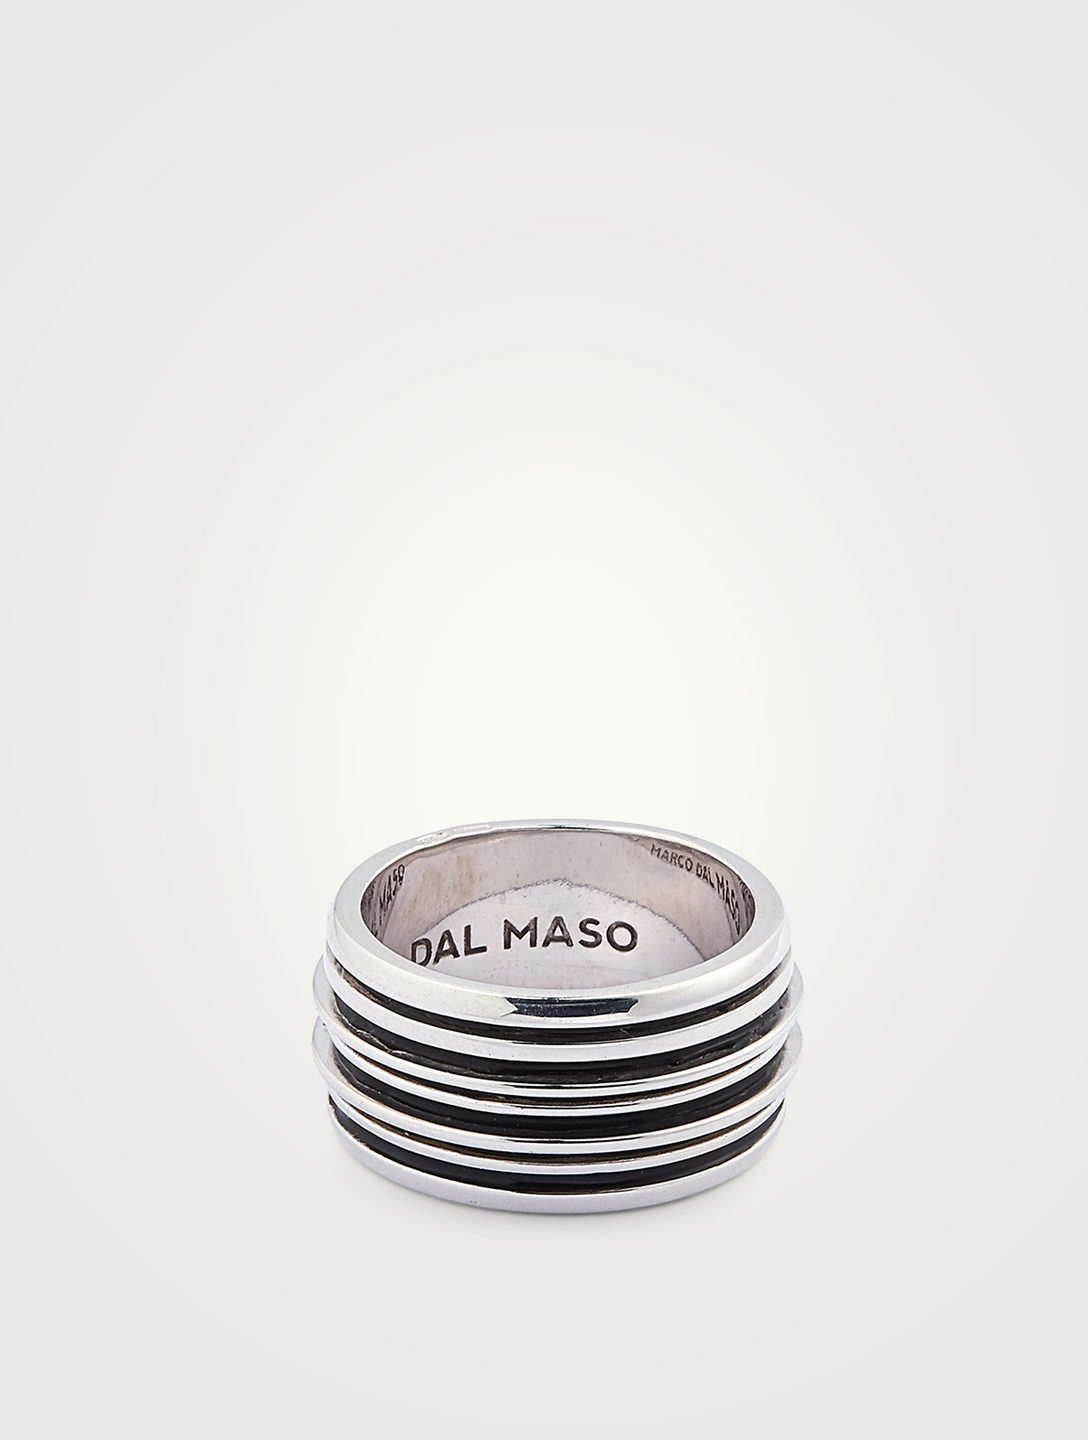 MARCO DAL MASO Acies Double Polished Silver Ring Men's Metallic